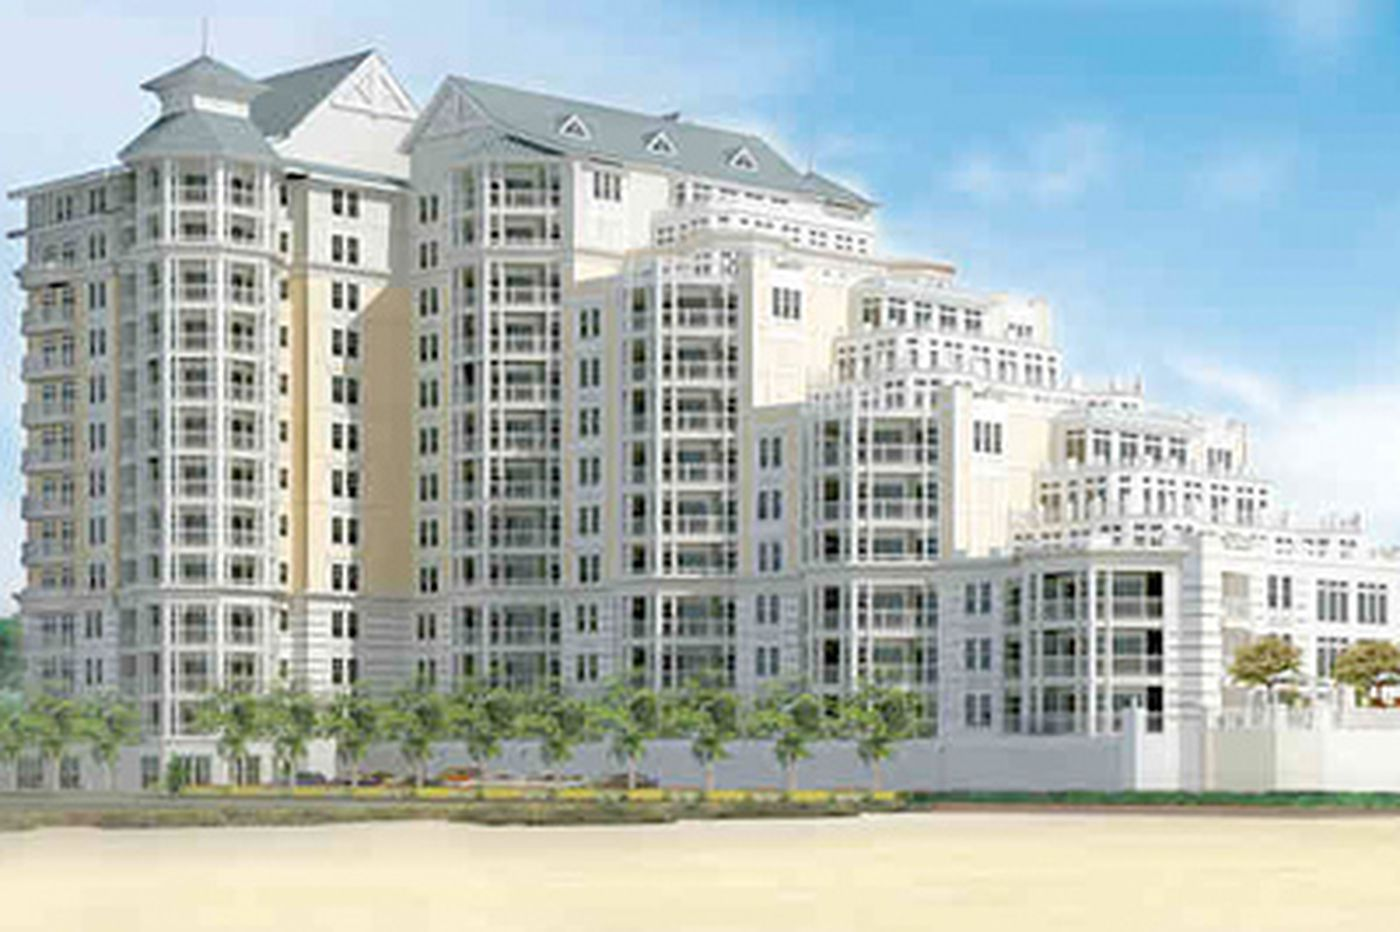 July auction for 18 luxury condo units in Lower Twp.